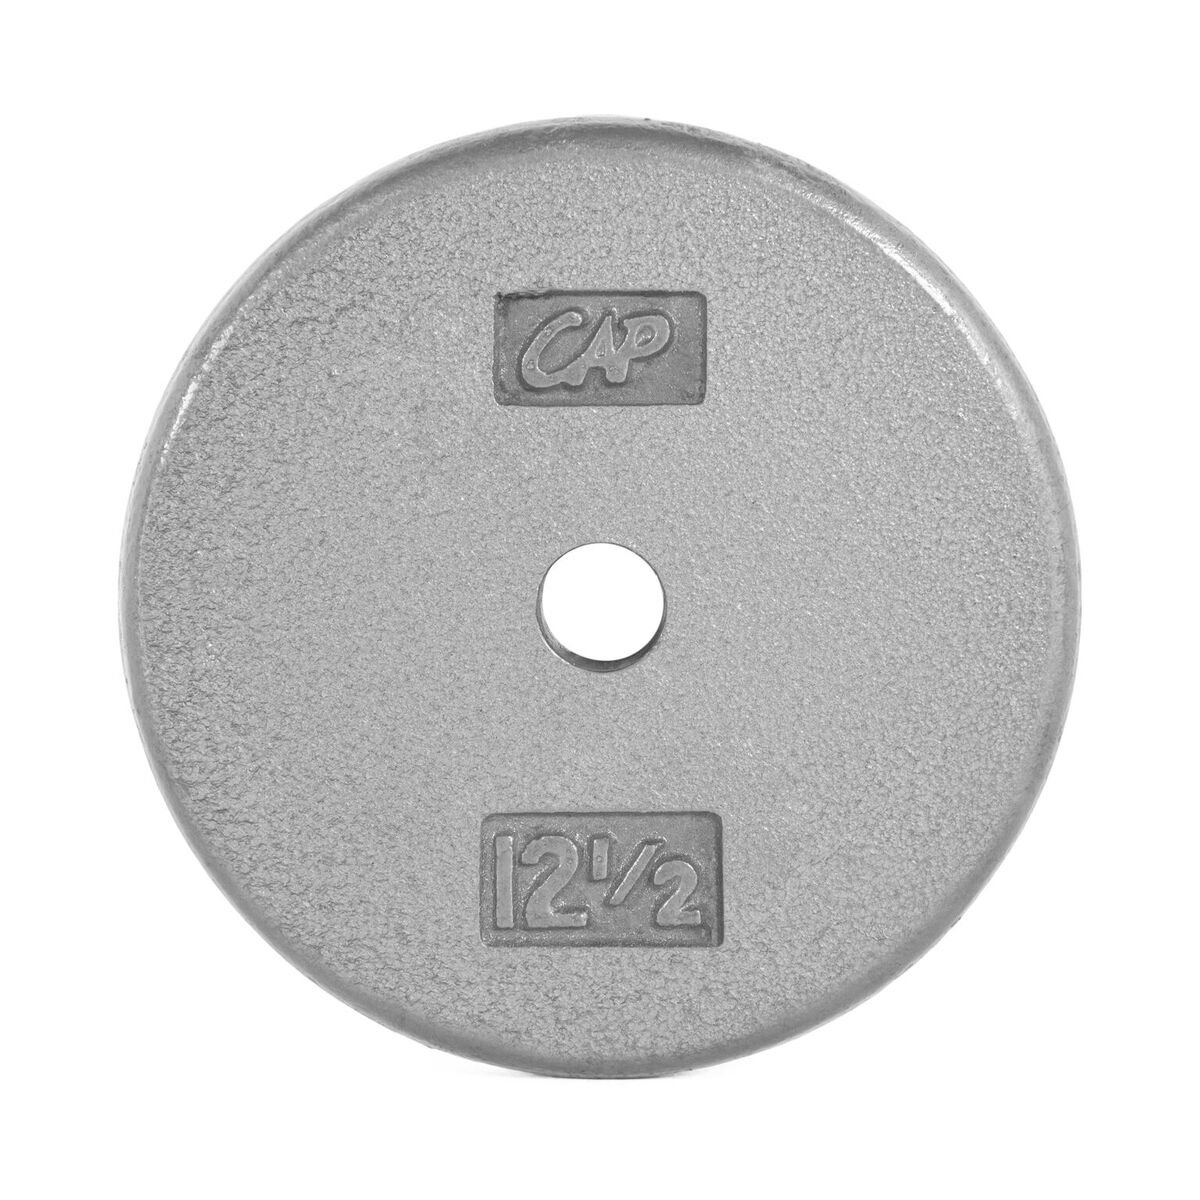 CAP Barbell Cast Iron Standard 1-Inch Weight Plates, Gray, Single, 12.5 Pound